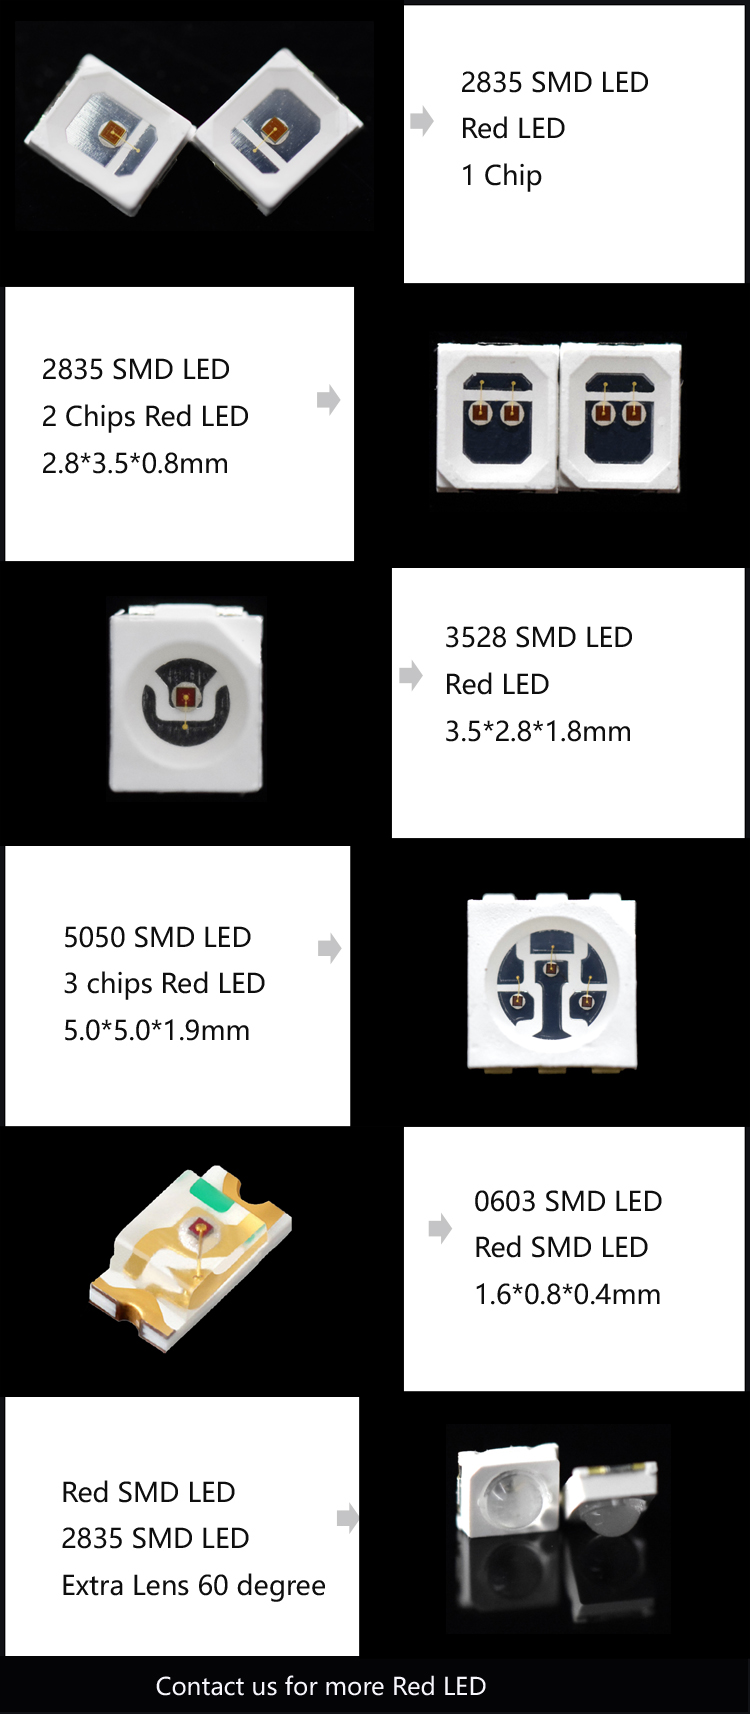 smd 5050 0.2W 620nm led application